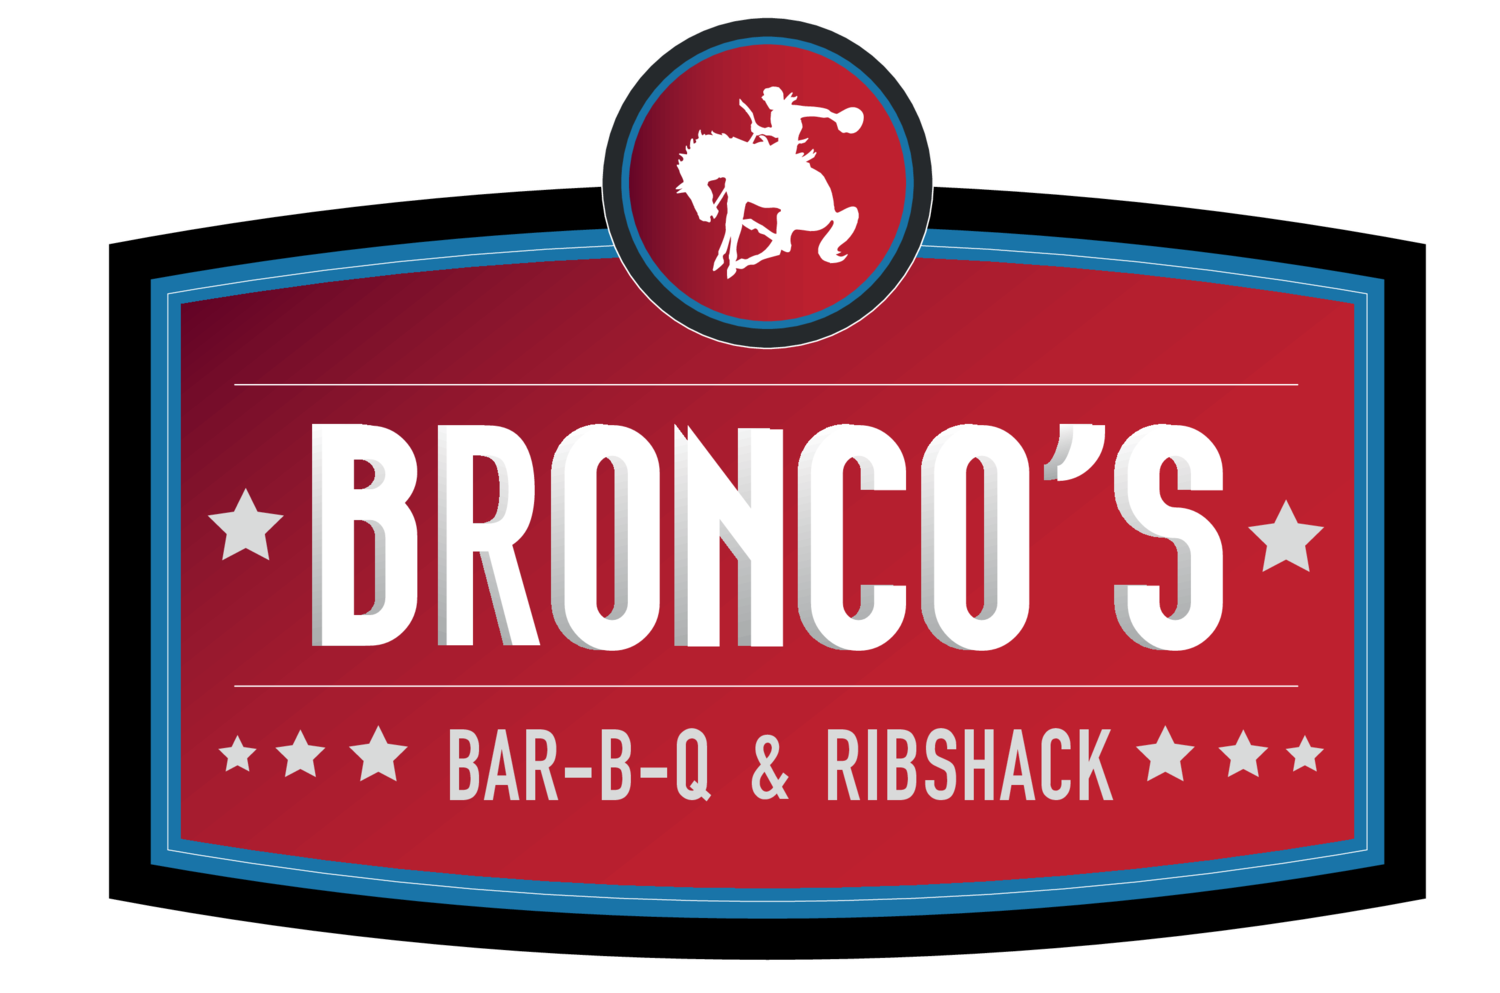 Bronco's Bar-B-Q & Ribshack